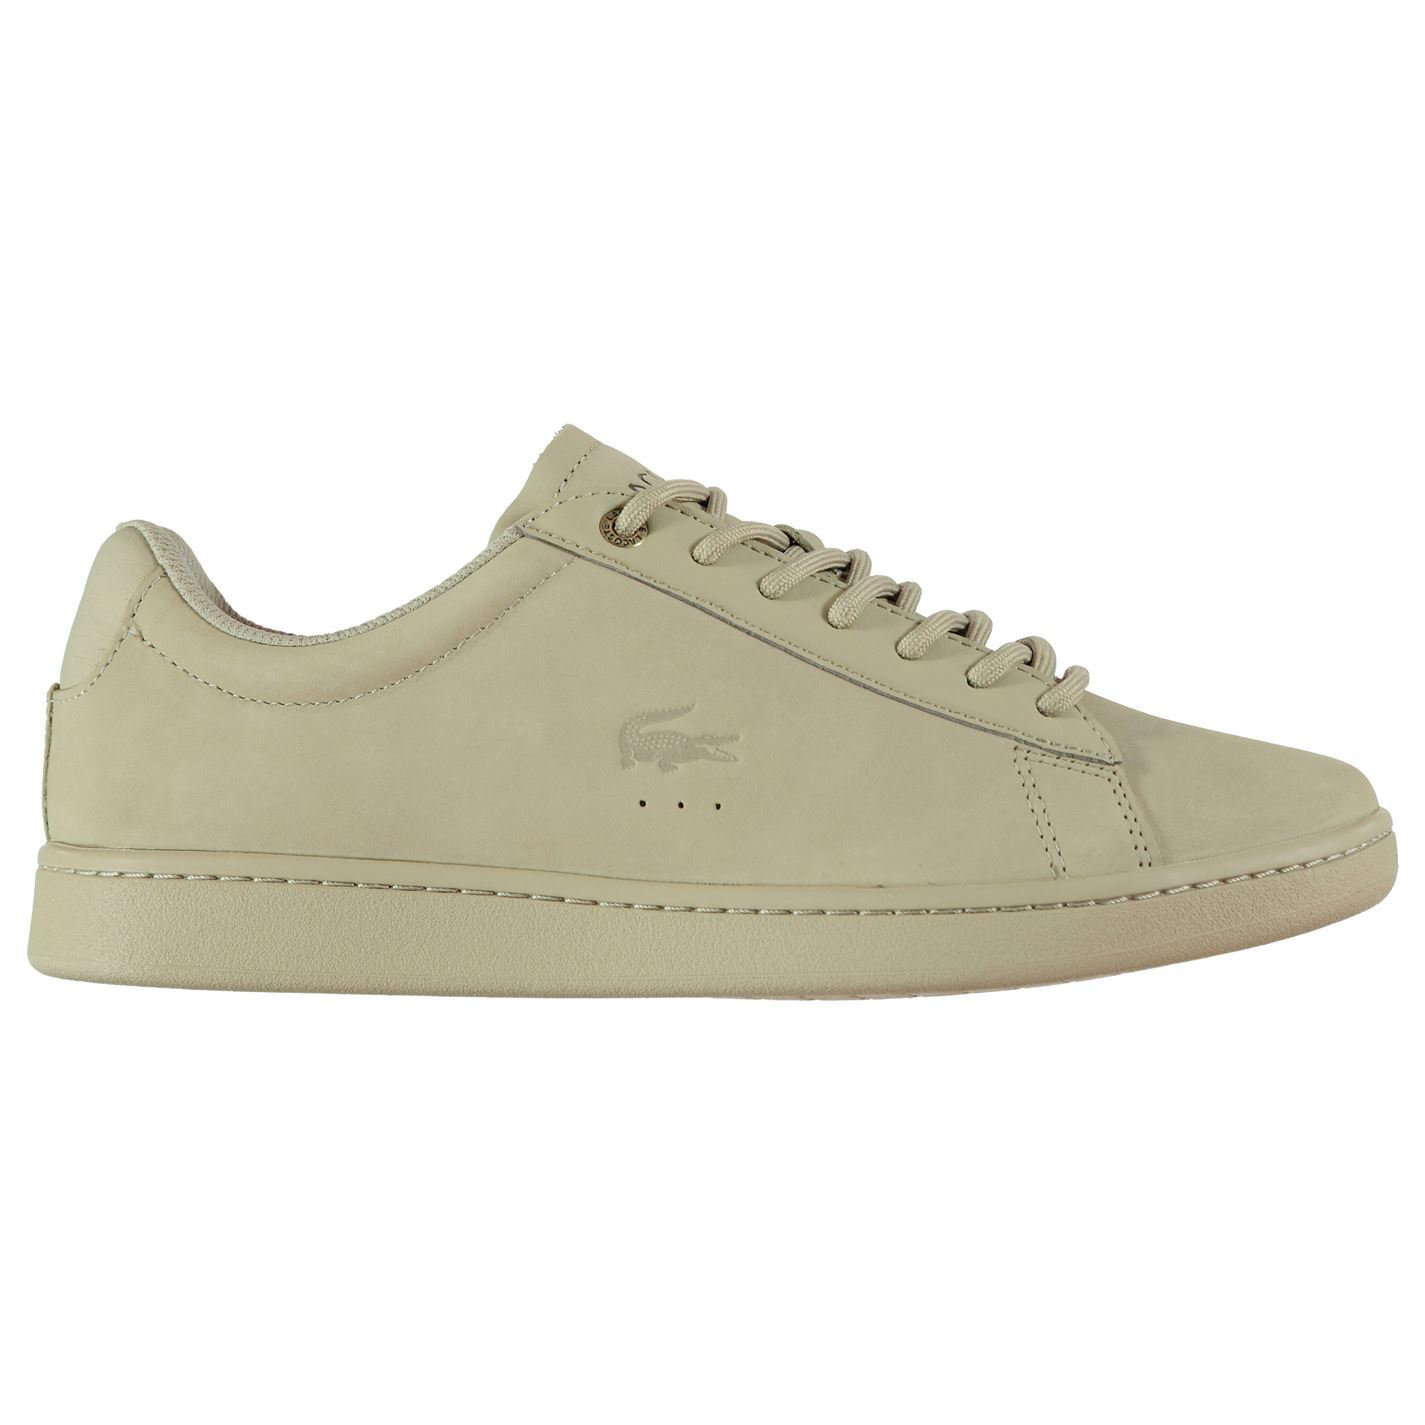 e0e04d3bc Mens LACOSTE Lacoste Carnaby Evo Gsp Trainers Low Lace Up Tonal Stitching  New